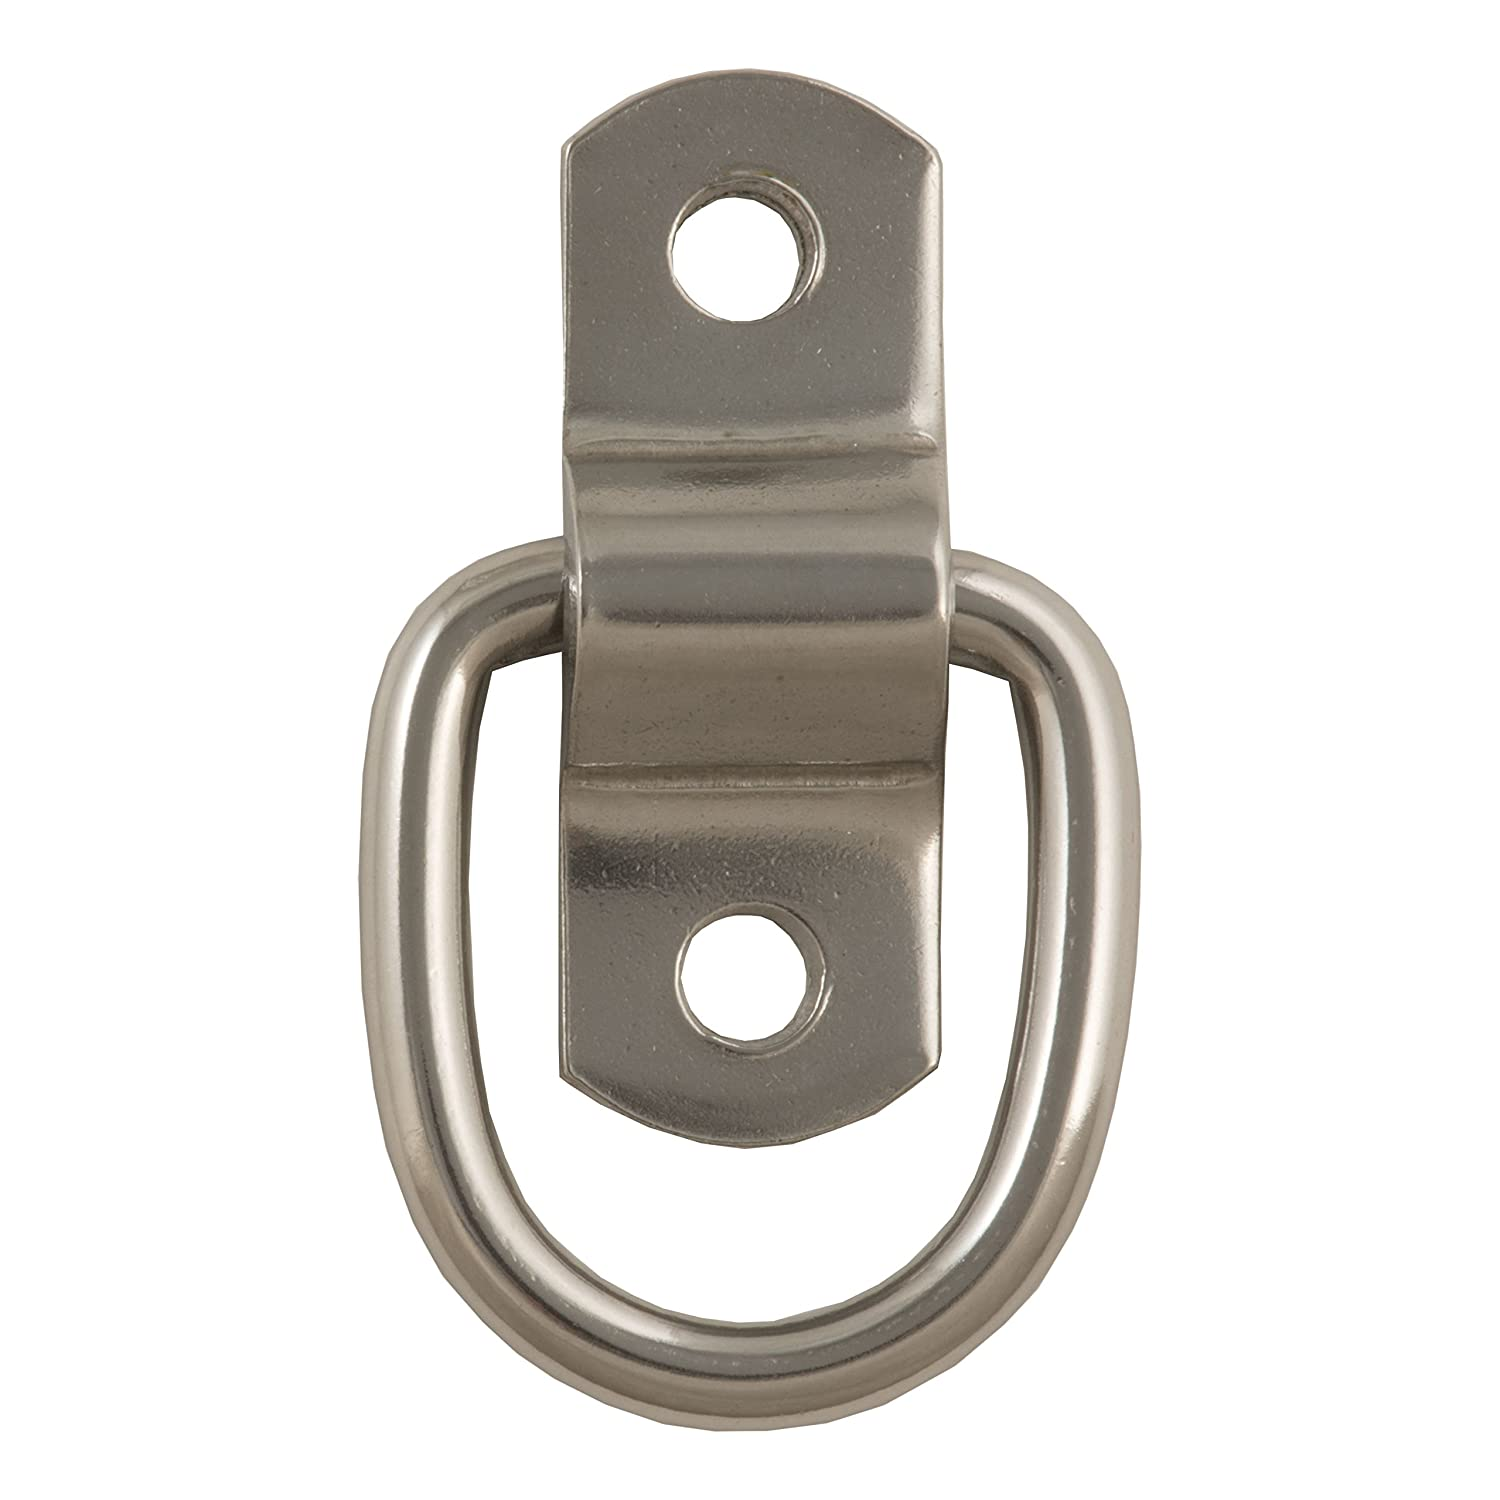 Break Strength CURT 83732 1-Inch x 1-1//4-Inch Surface-Mounted D-Ring Tie Down Anchors 1,200 lbs